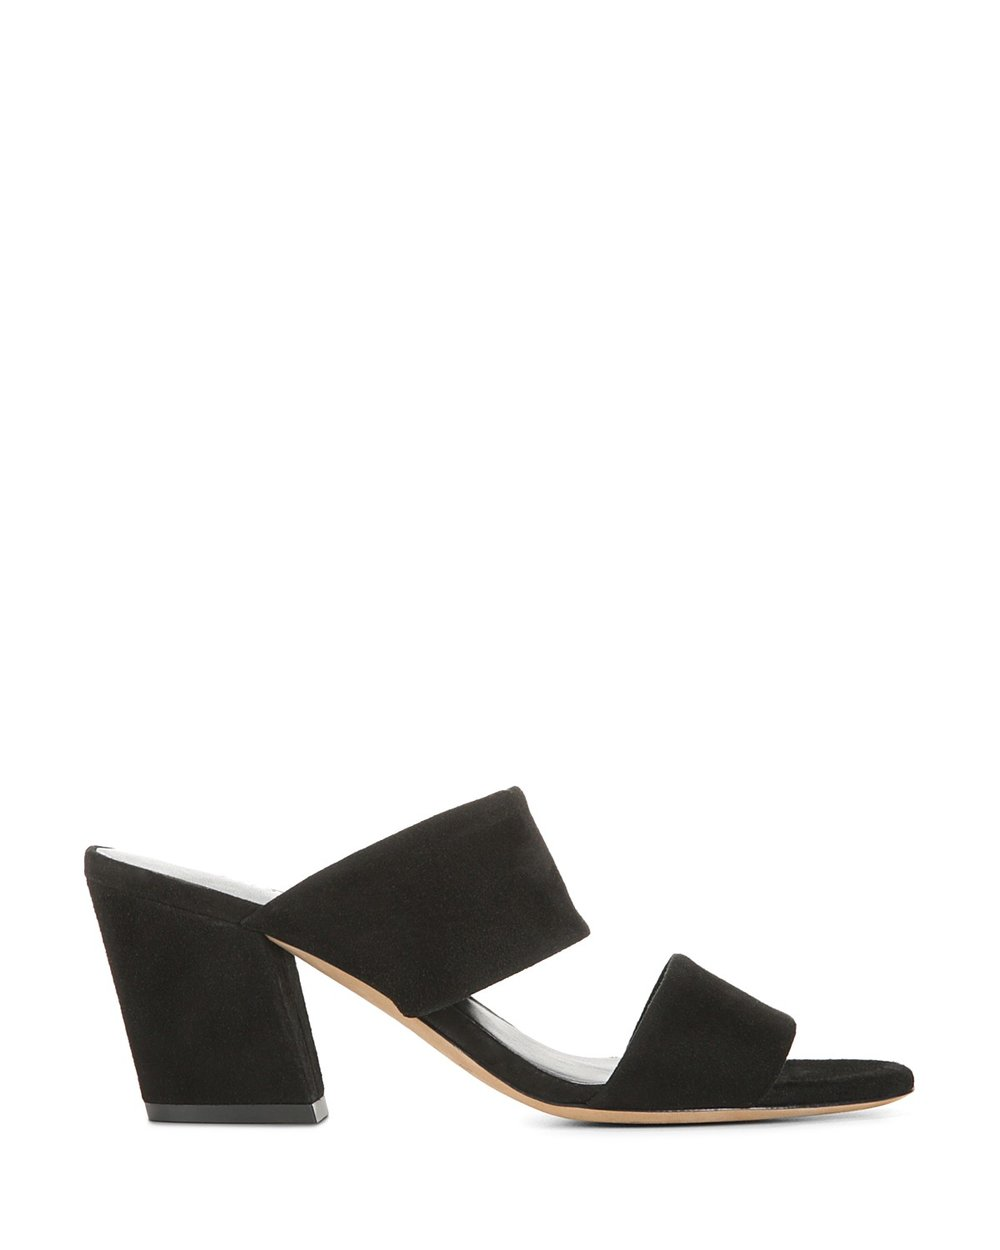 Benetta Suede Sandal in Black - 25% off